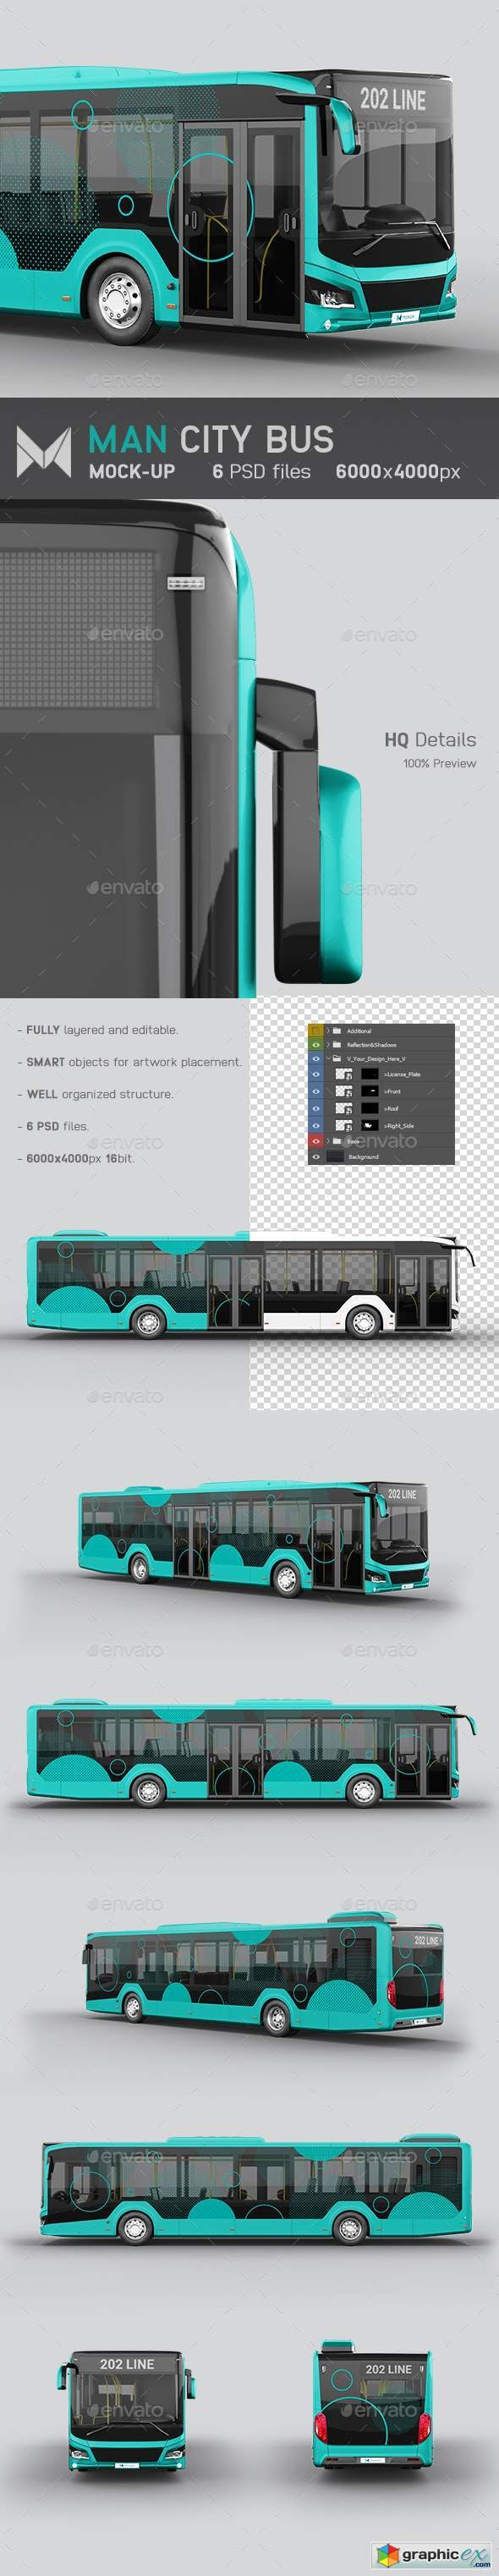 Man City Bus Mockup